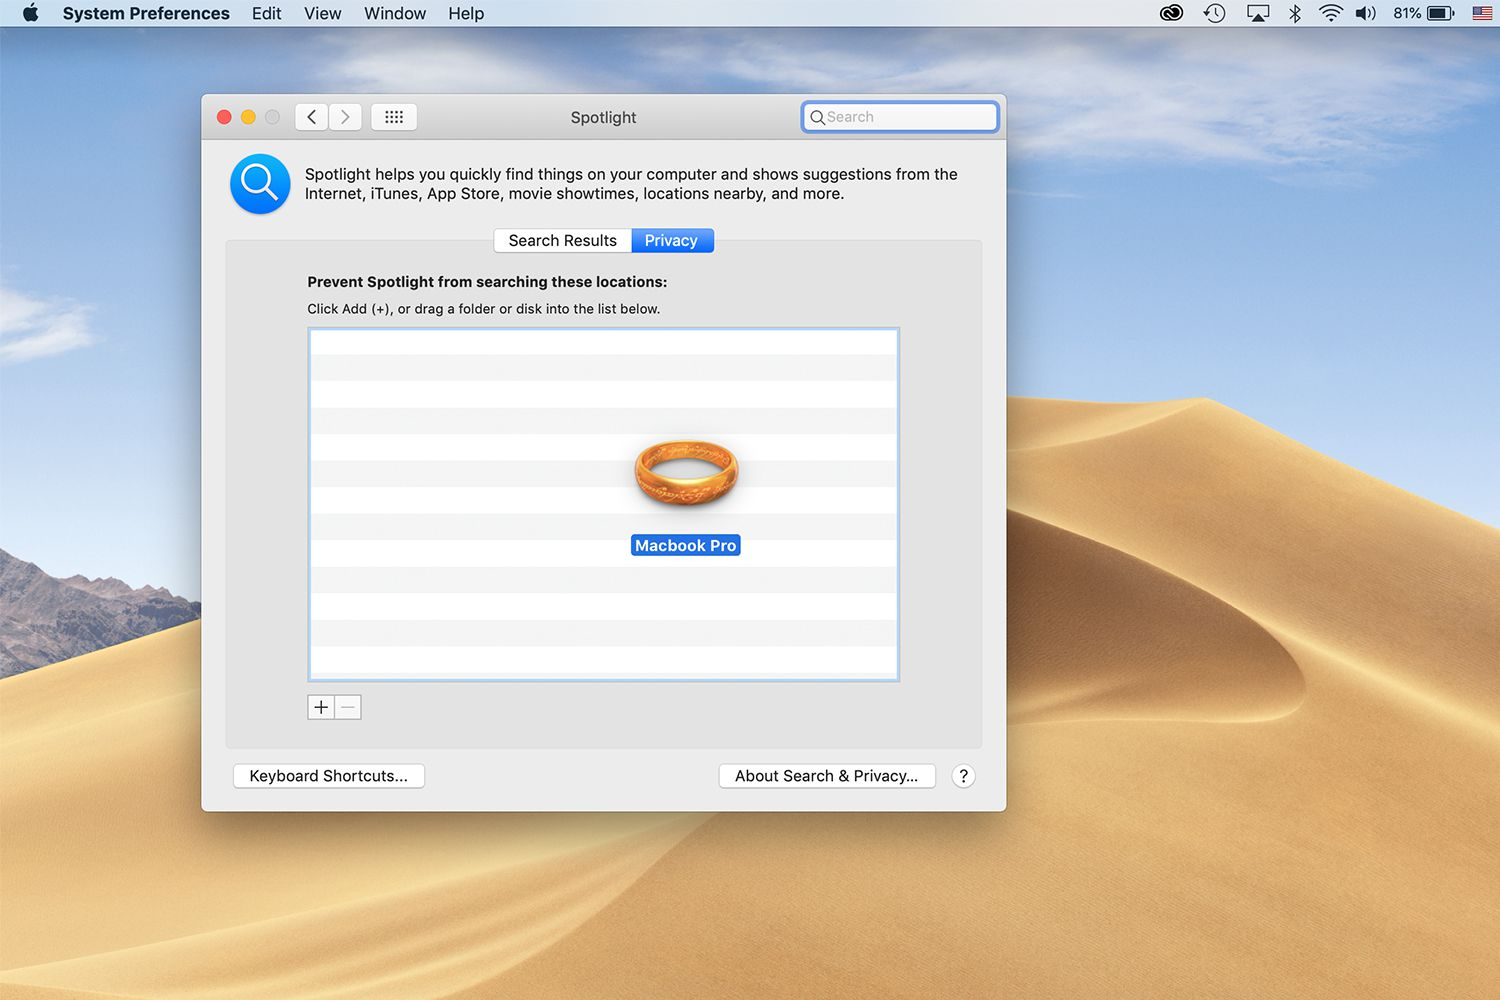 Spotlight privacy settings screen with Hard drive icon